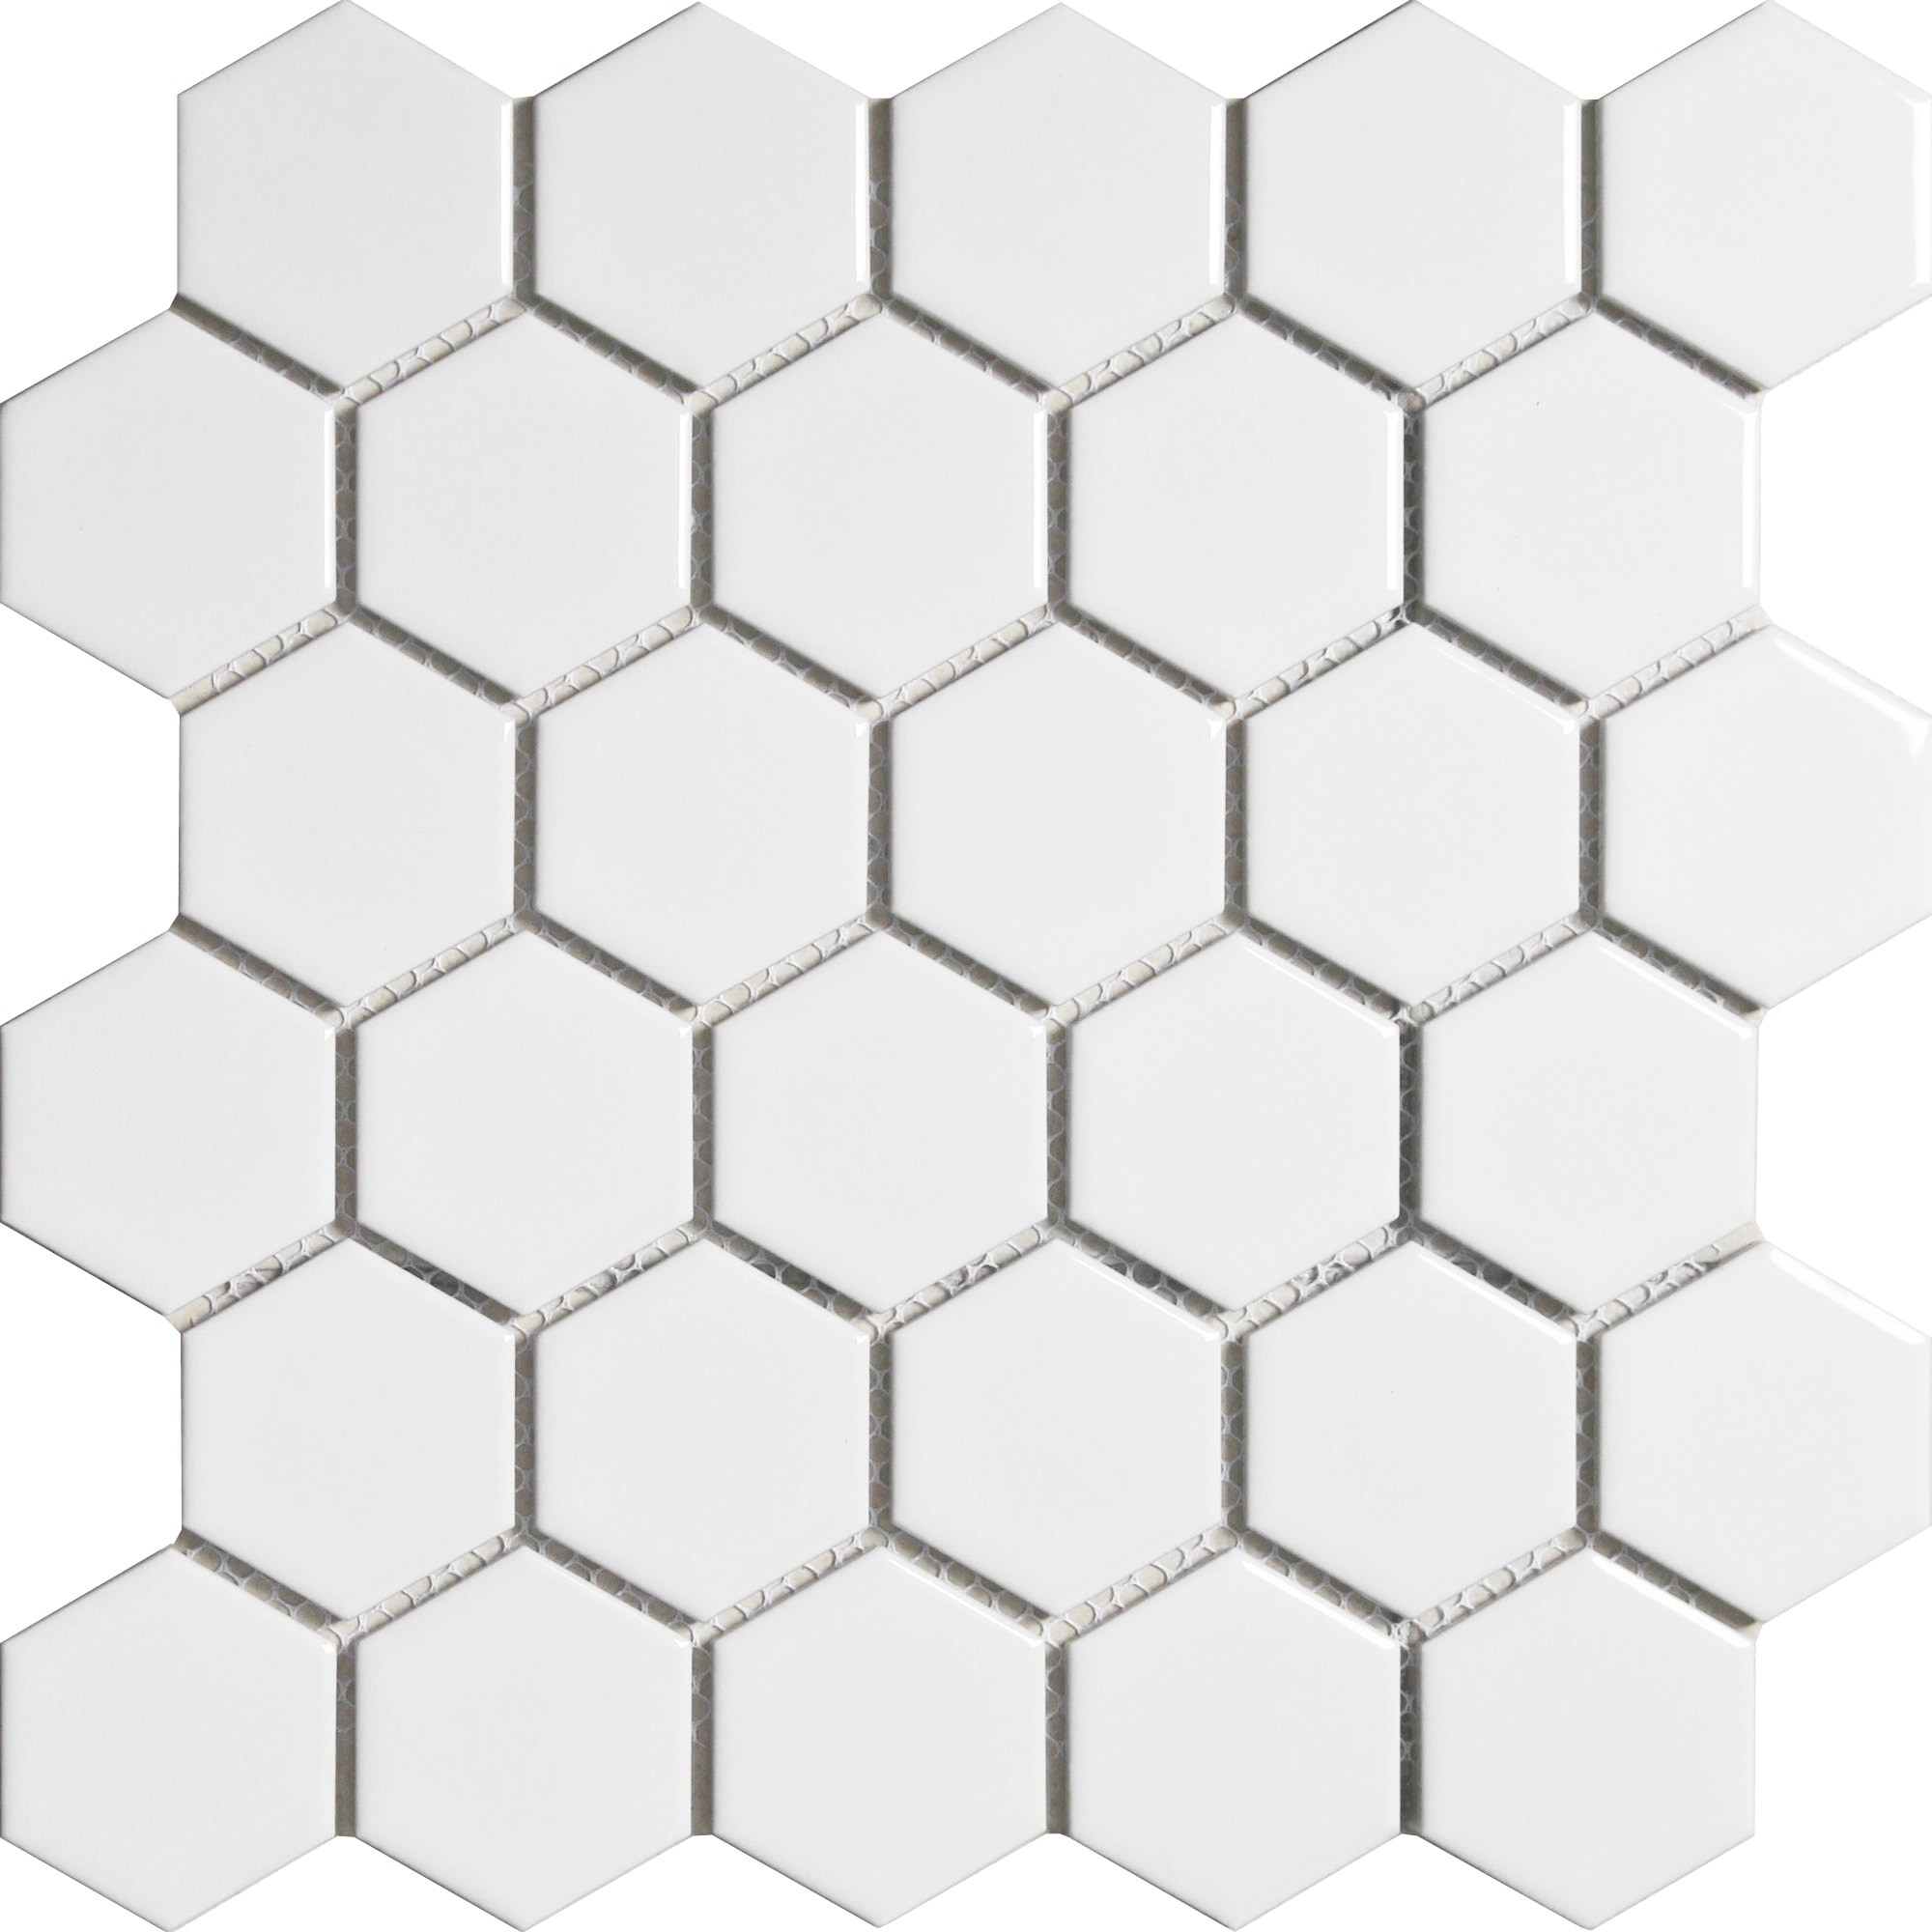 """11 x 10.5 x 0.24 inches / Glossy Retro 2"""" Hexagon Porcelain Glossy Wall Tile in White 0"""